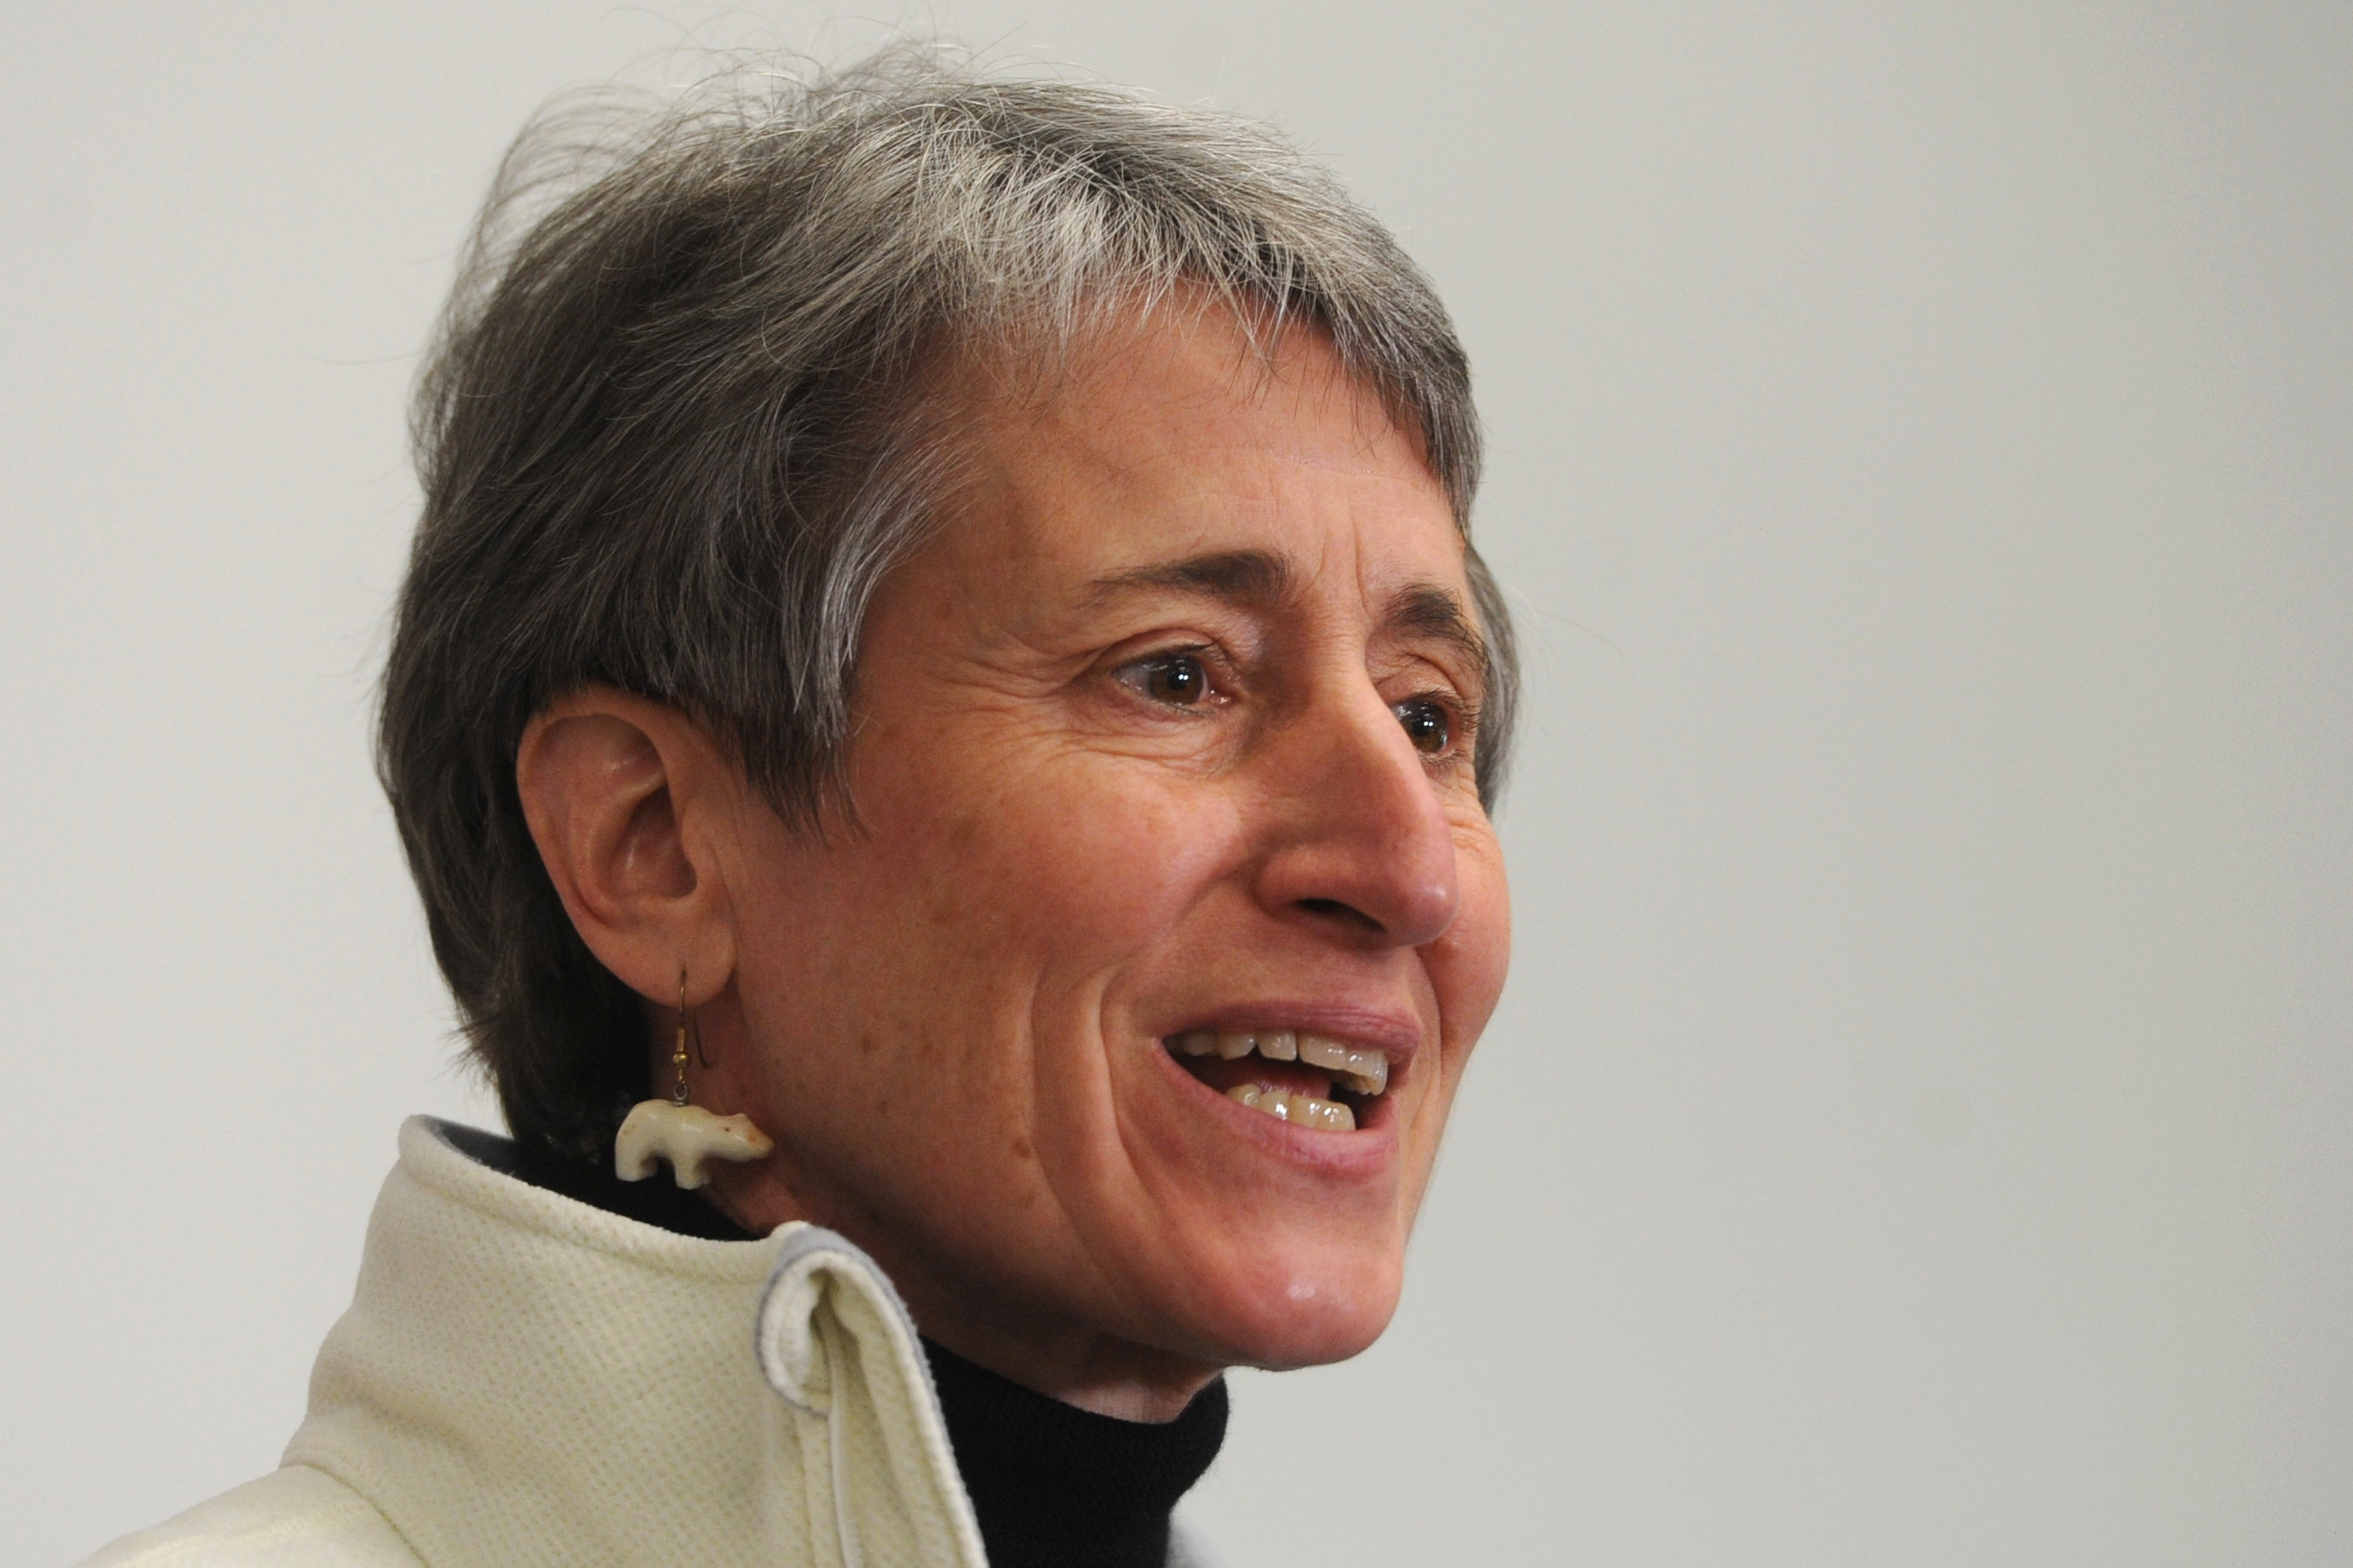 Interior Secretary Sally Jewell held a press conference in Anchorage on Tuesday, Feb. 17, 2015, to discuss her visit to Alaska. (Bill Roth / Alaska Dispatch News)